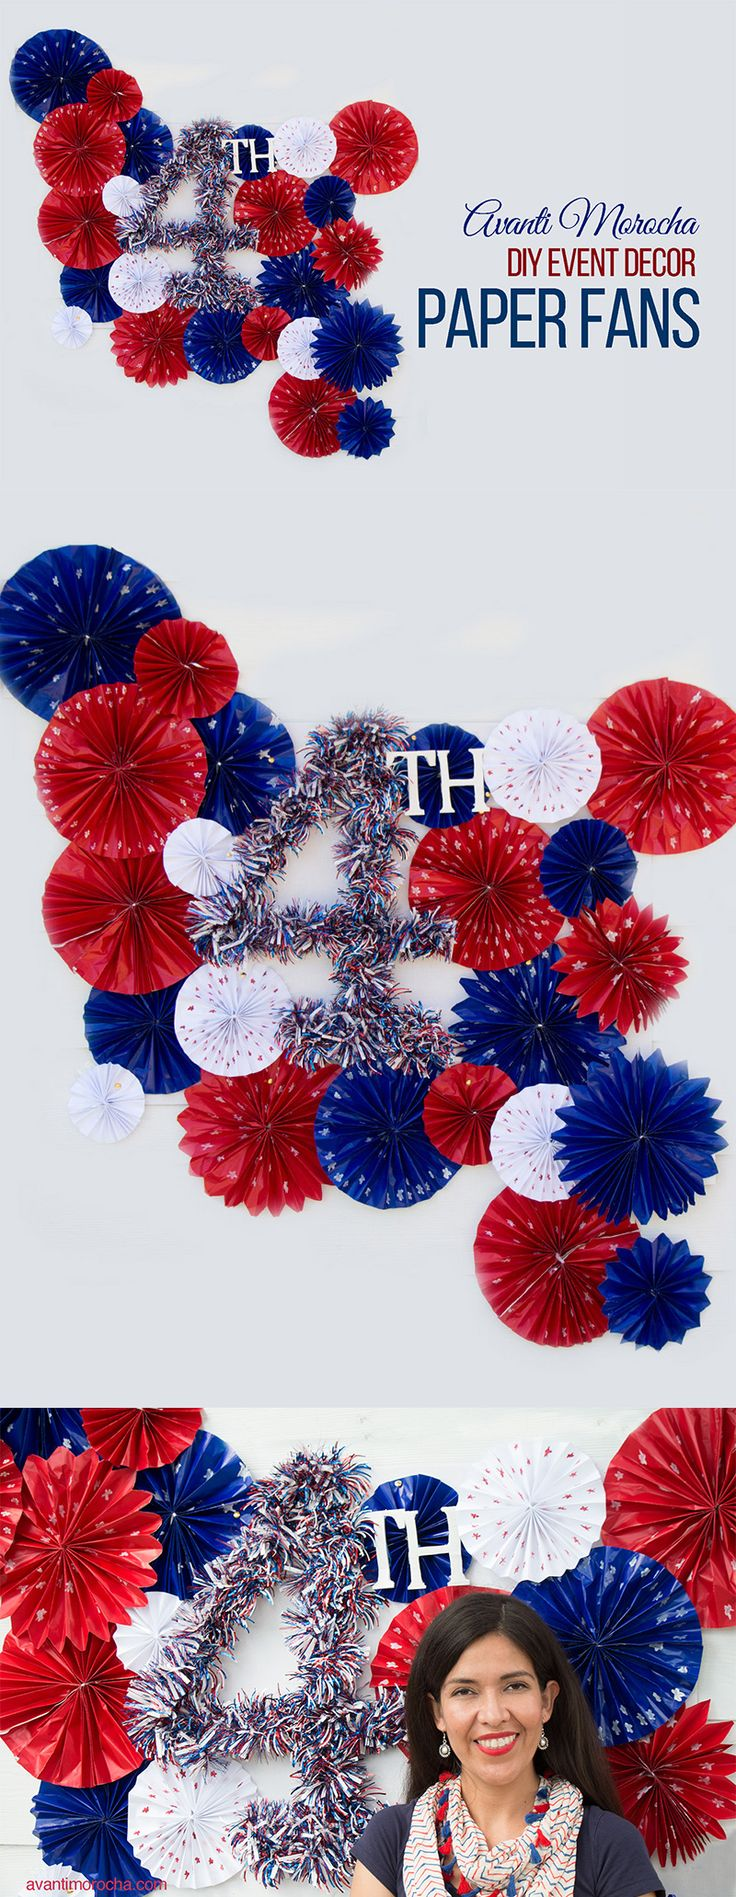 4th of July DIY / Event Decor -How to make Paper Fans -- Fiestas Patrias / Decoration de eventos / Como hacer abanicos de papel.